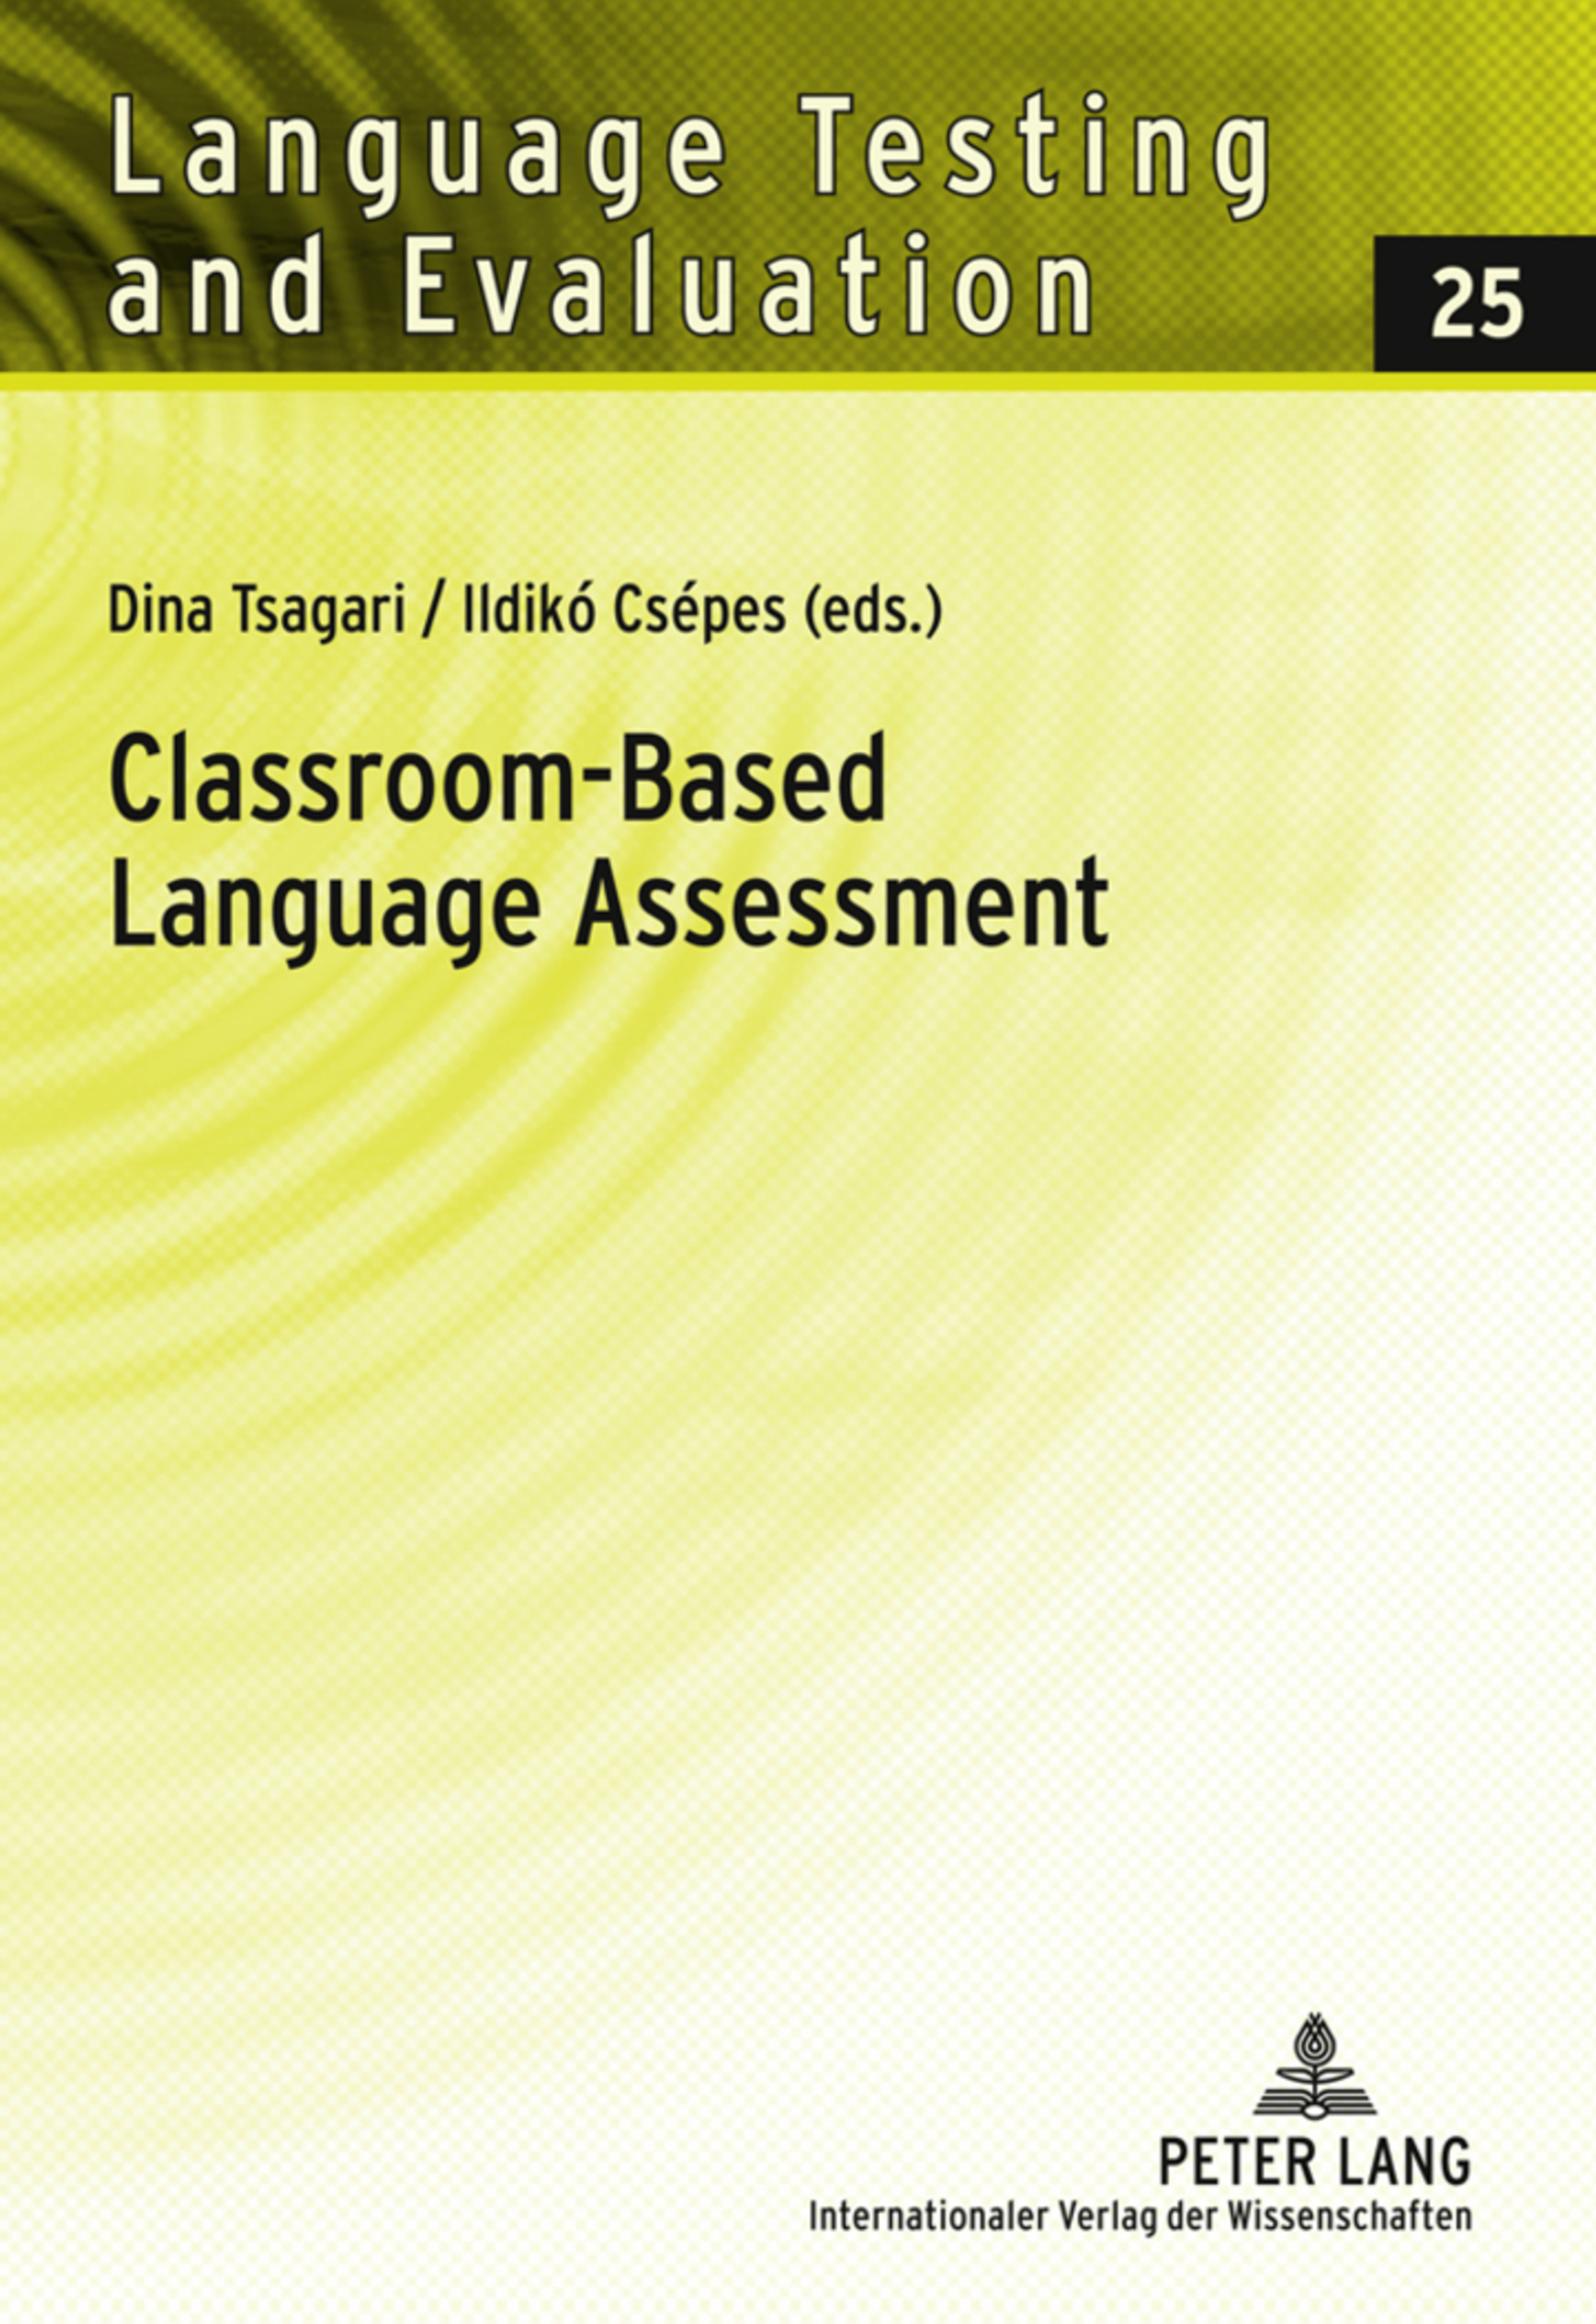 Title: Classroom-Based Language Assessment